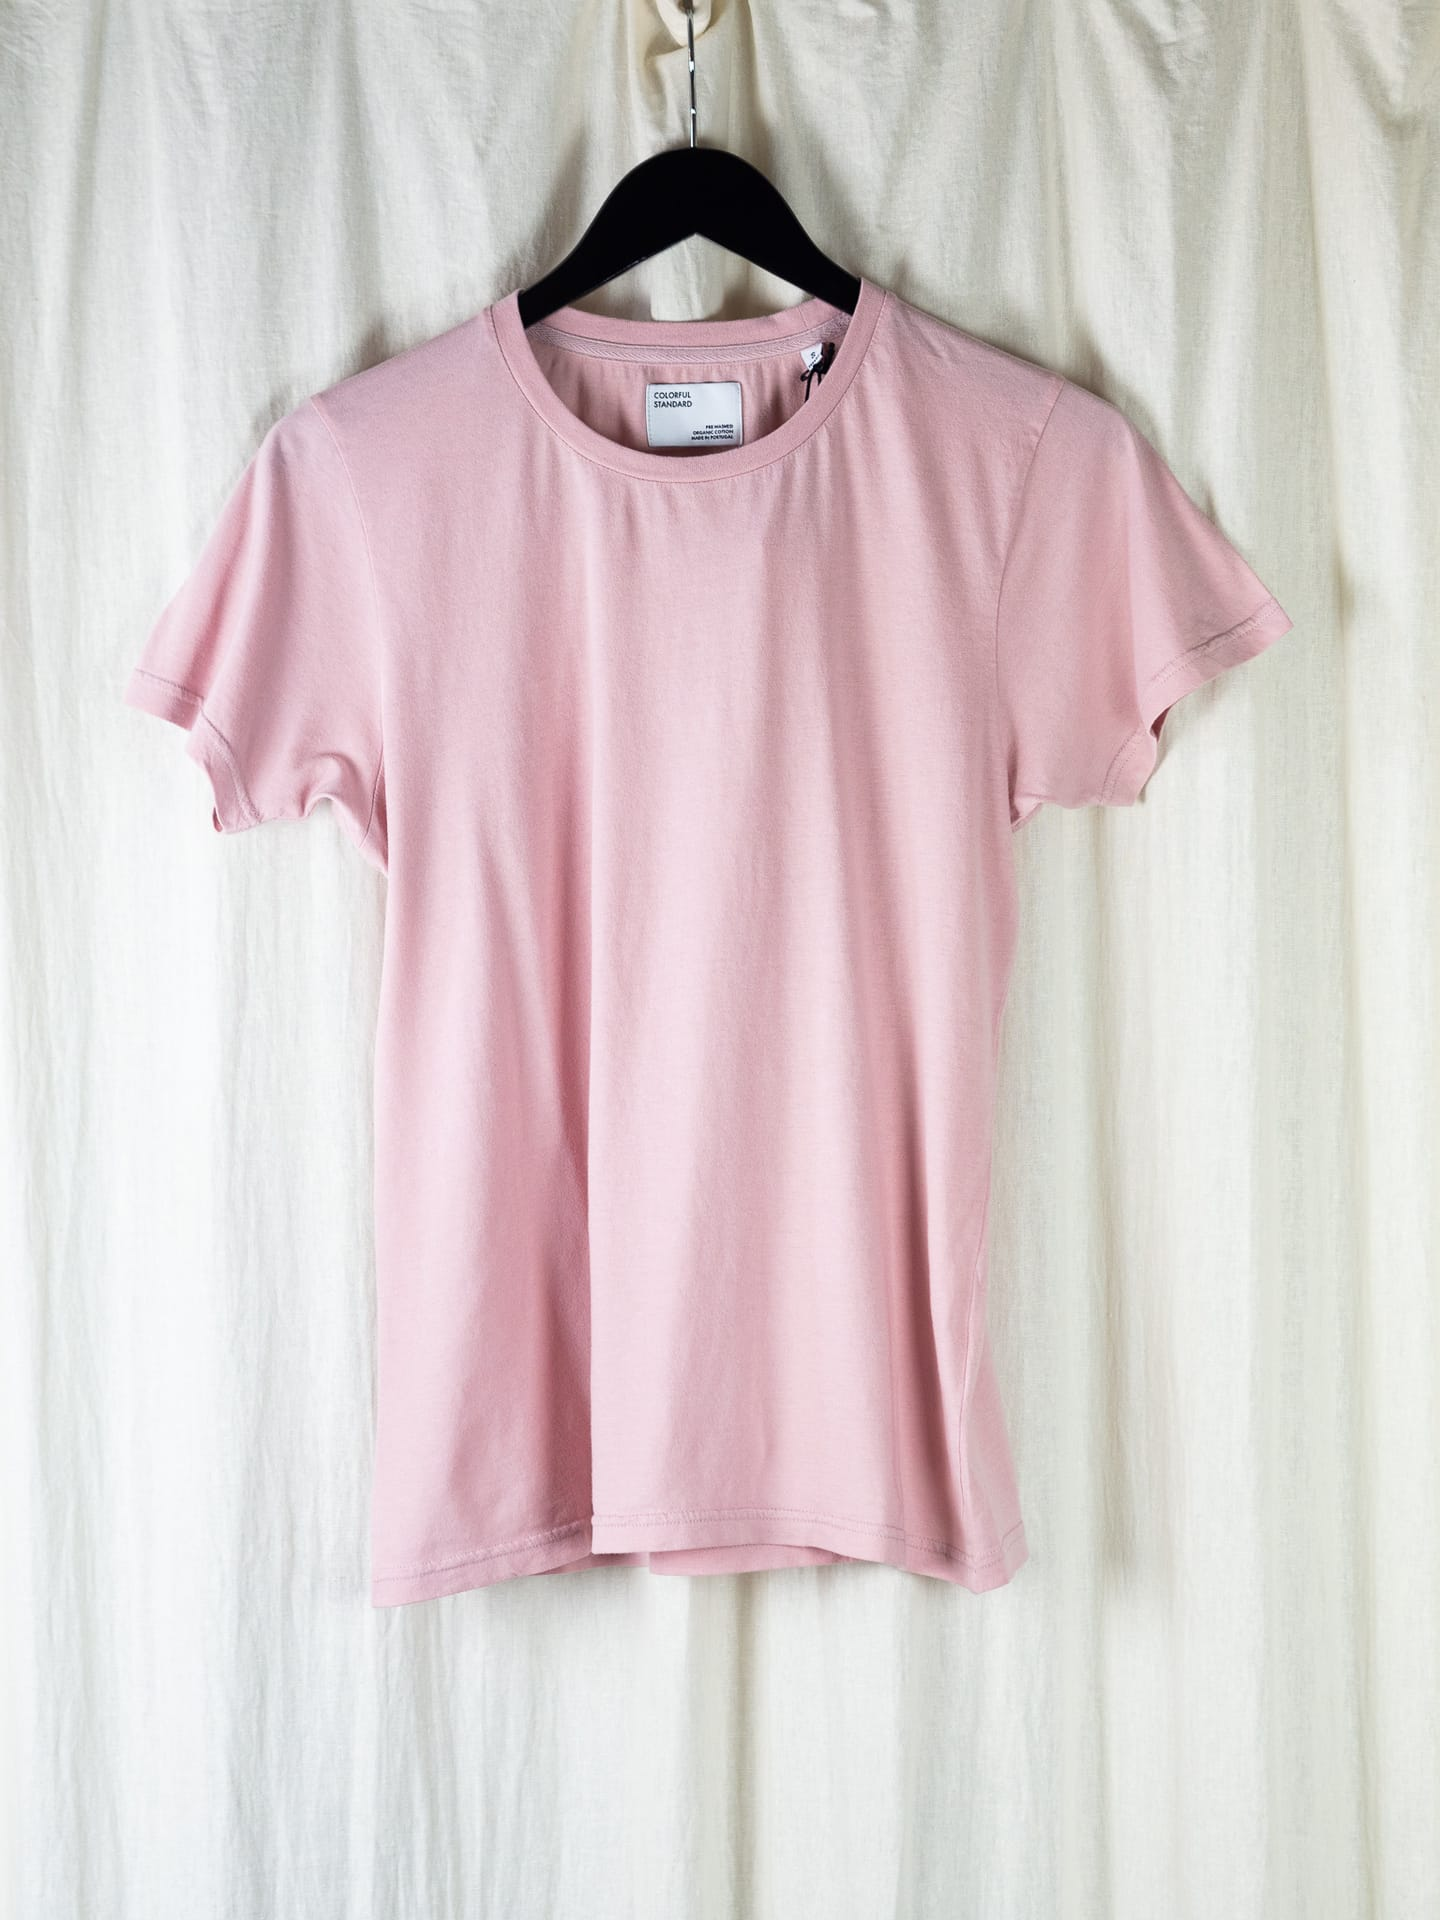 Women light organic tee - faded pink